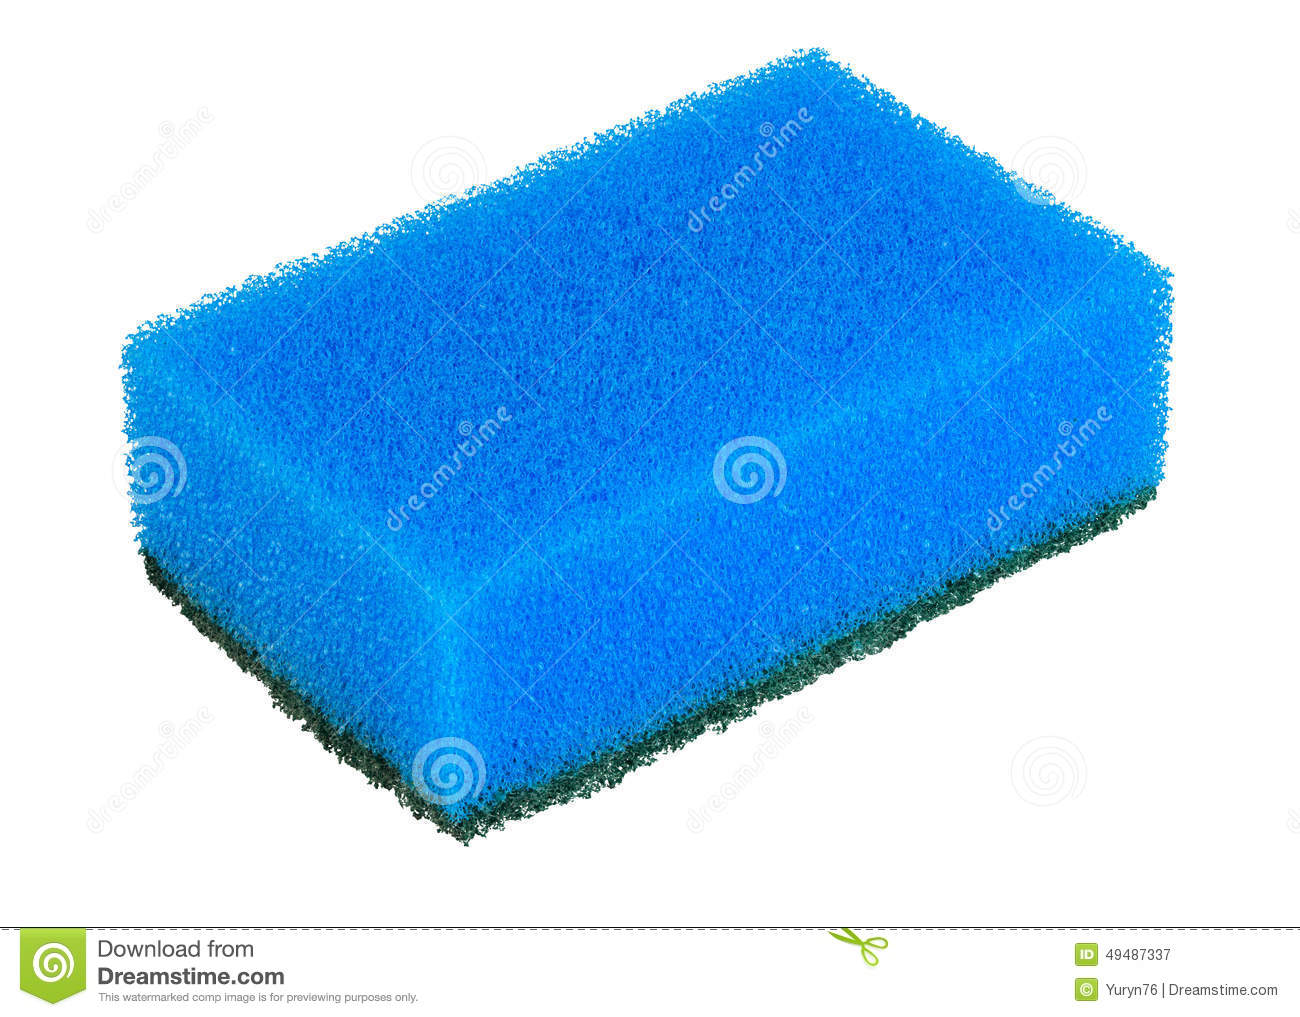 how to make a housework sponge